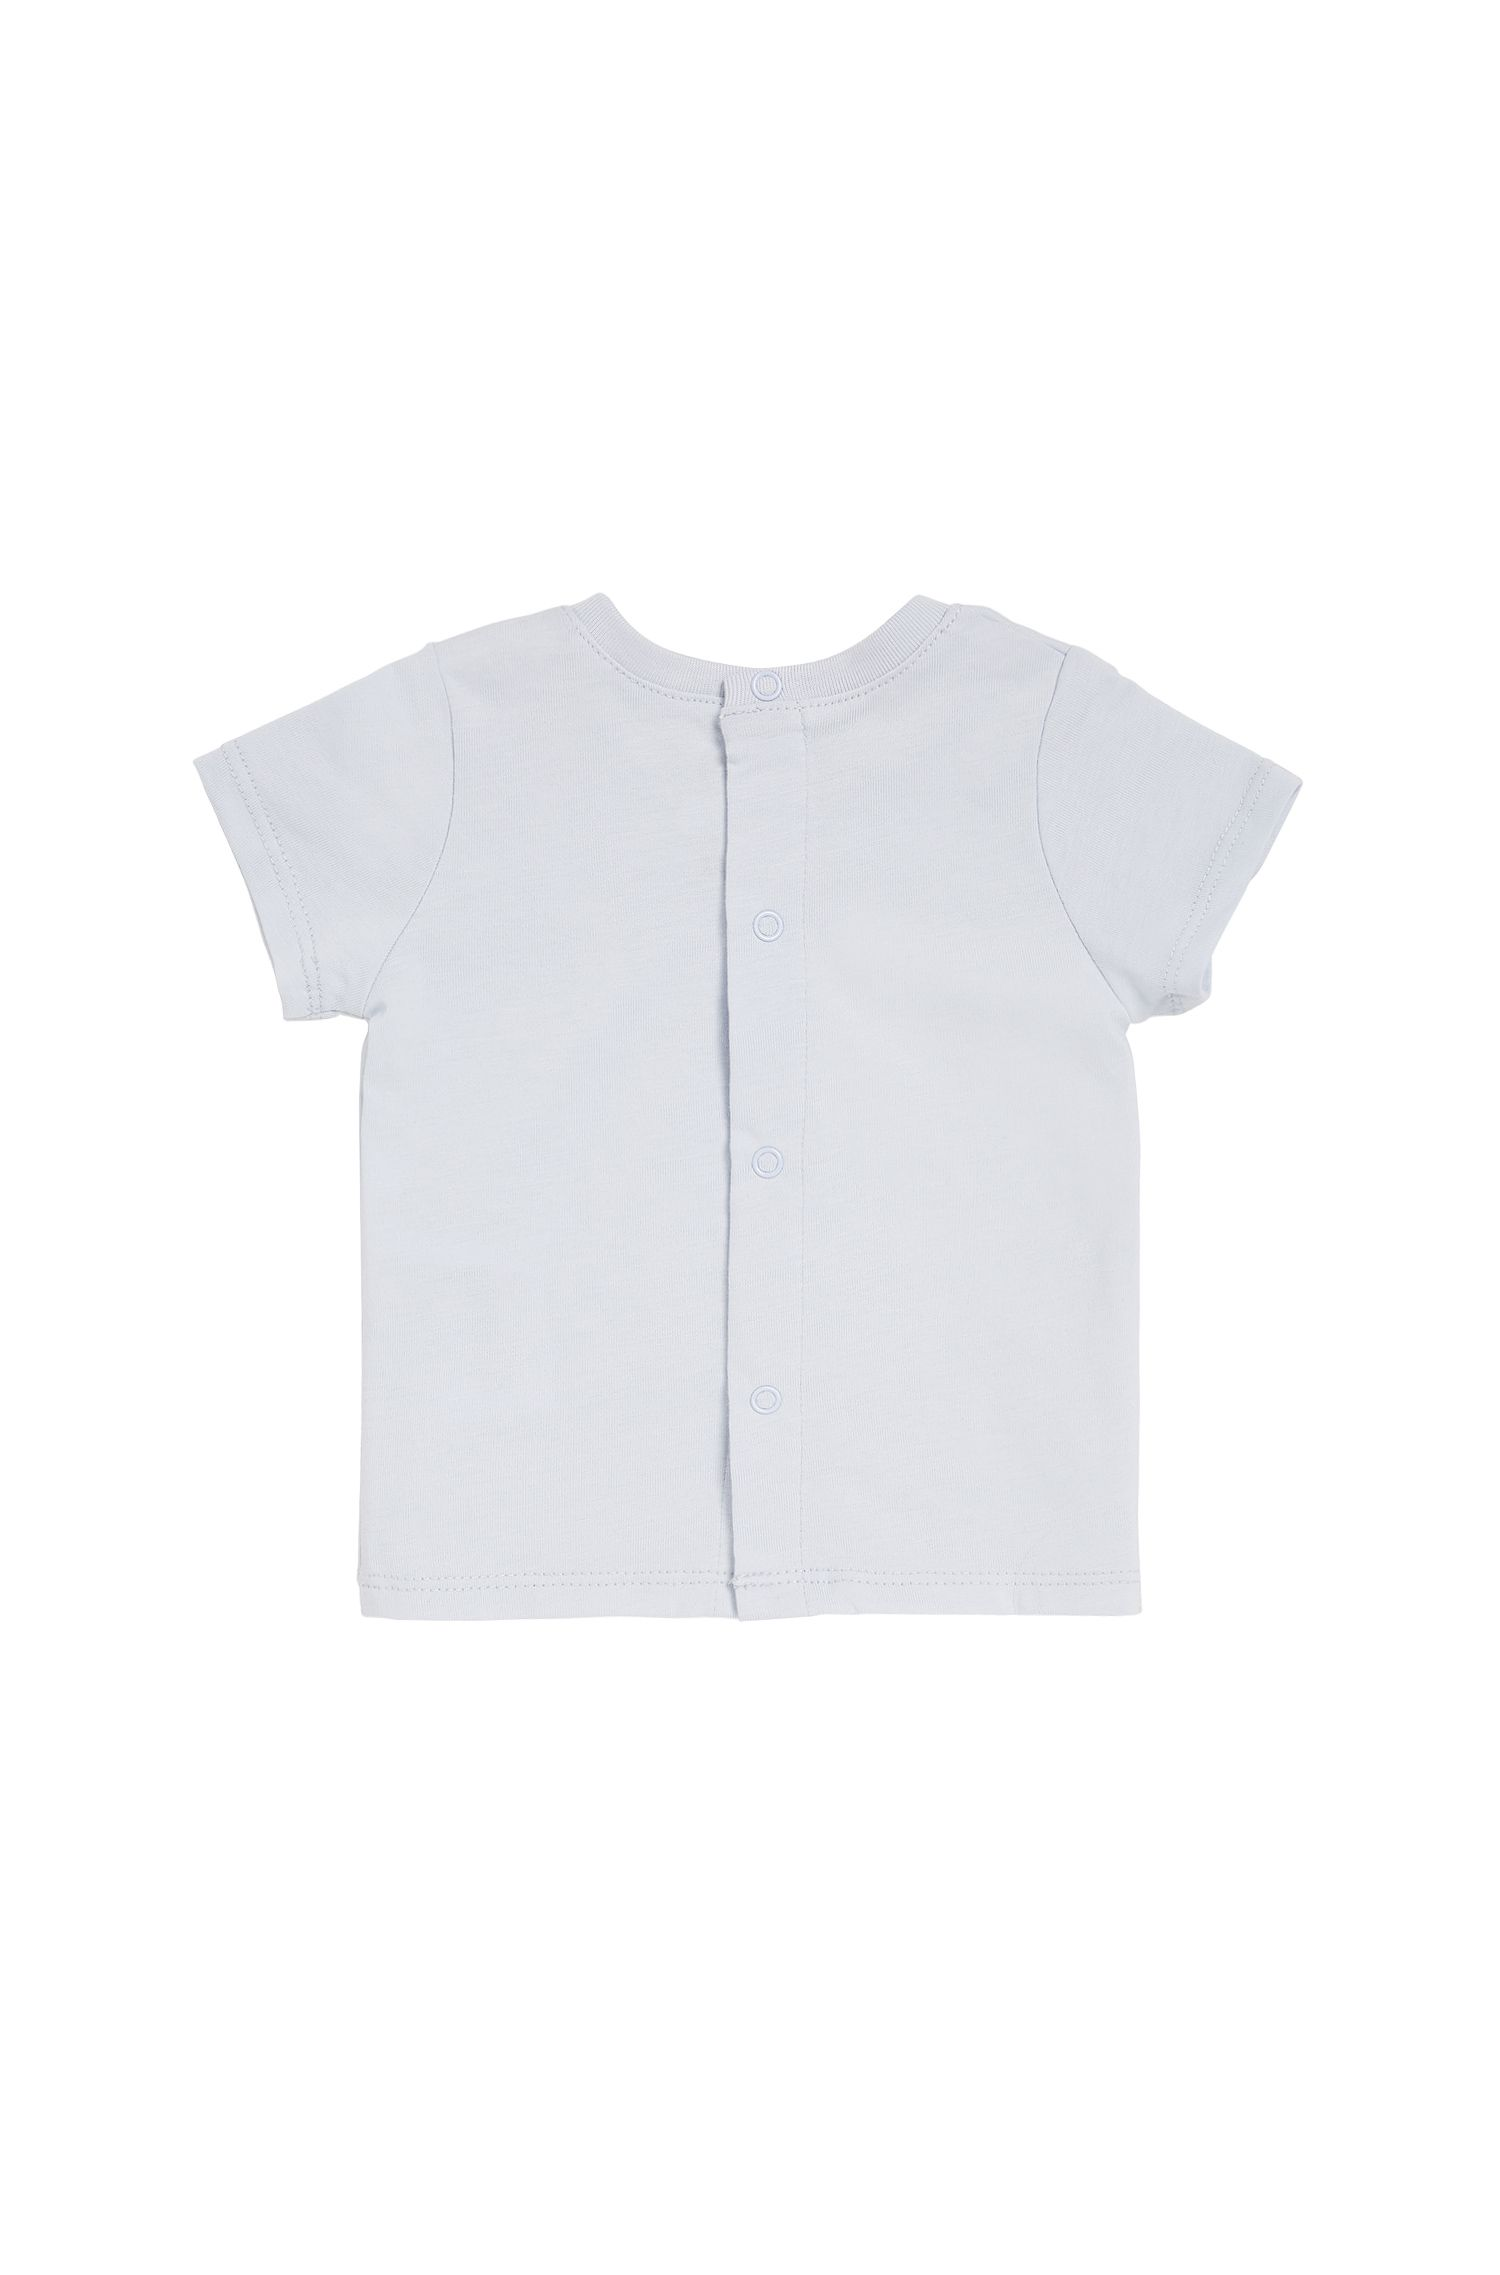 Regular-Fit Baby-Shirt aus Baumwolle